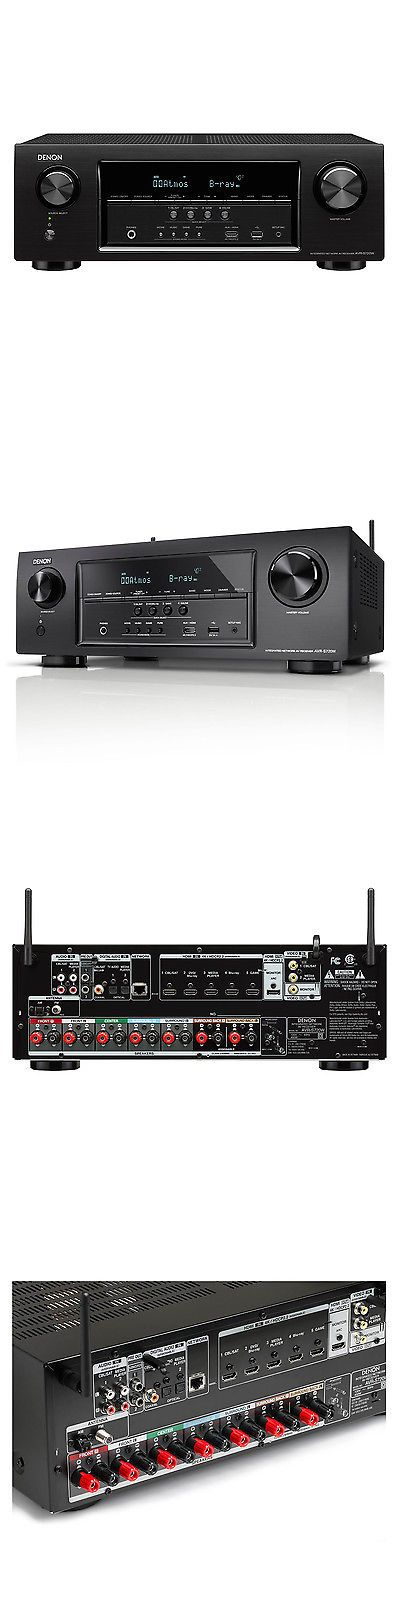 Home Theater Receivers: Denon Avr-S720w 7.2 Channel Surround Sound Receiver With Wi-Fi And Bluetooth BUY IT NOW ONLY: $479.0